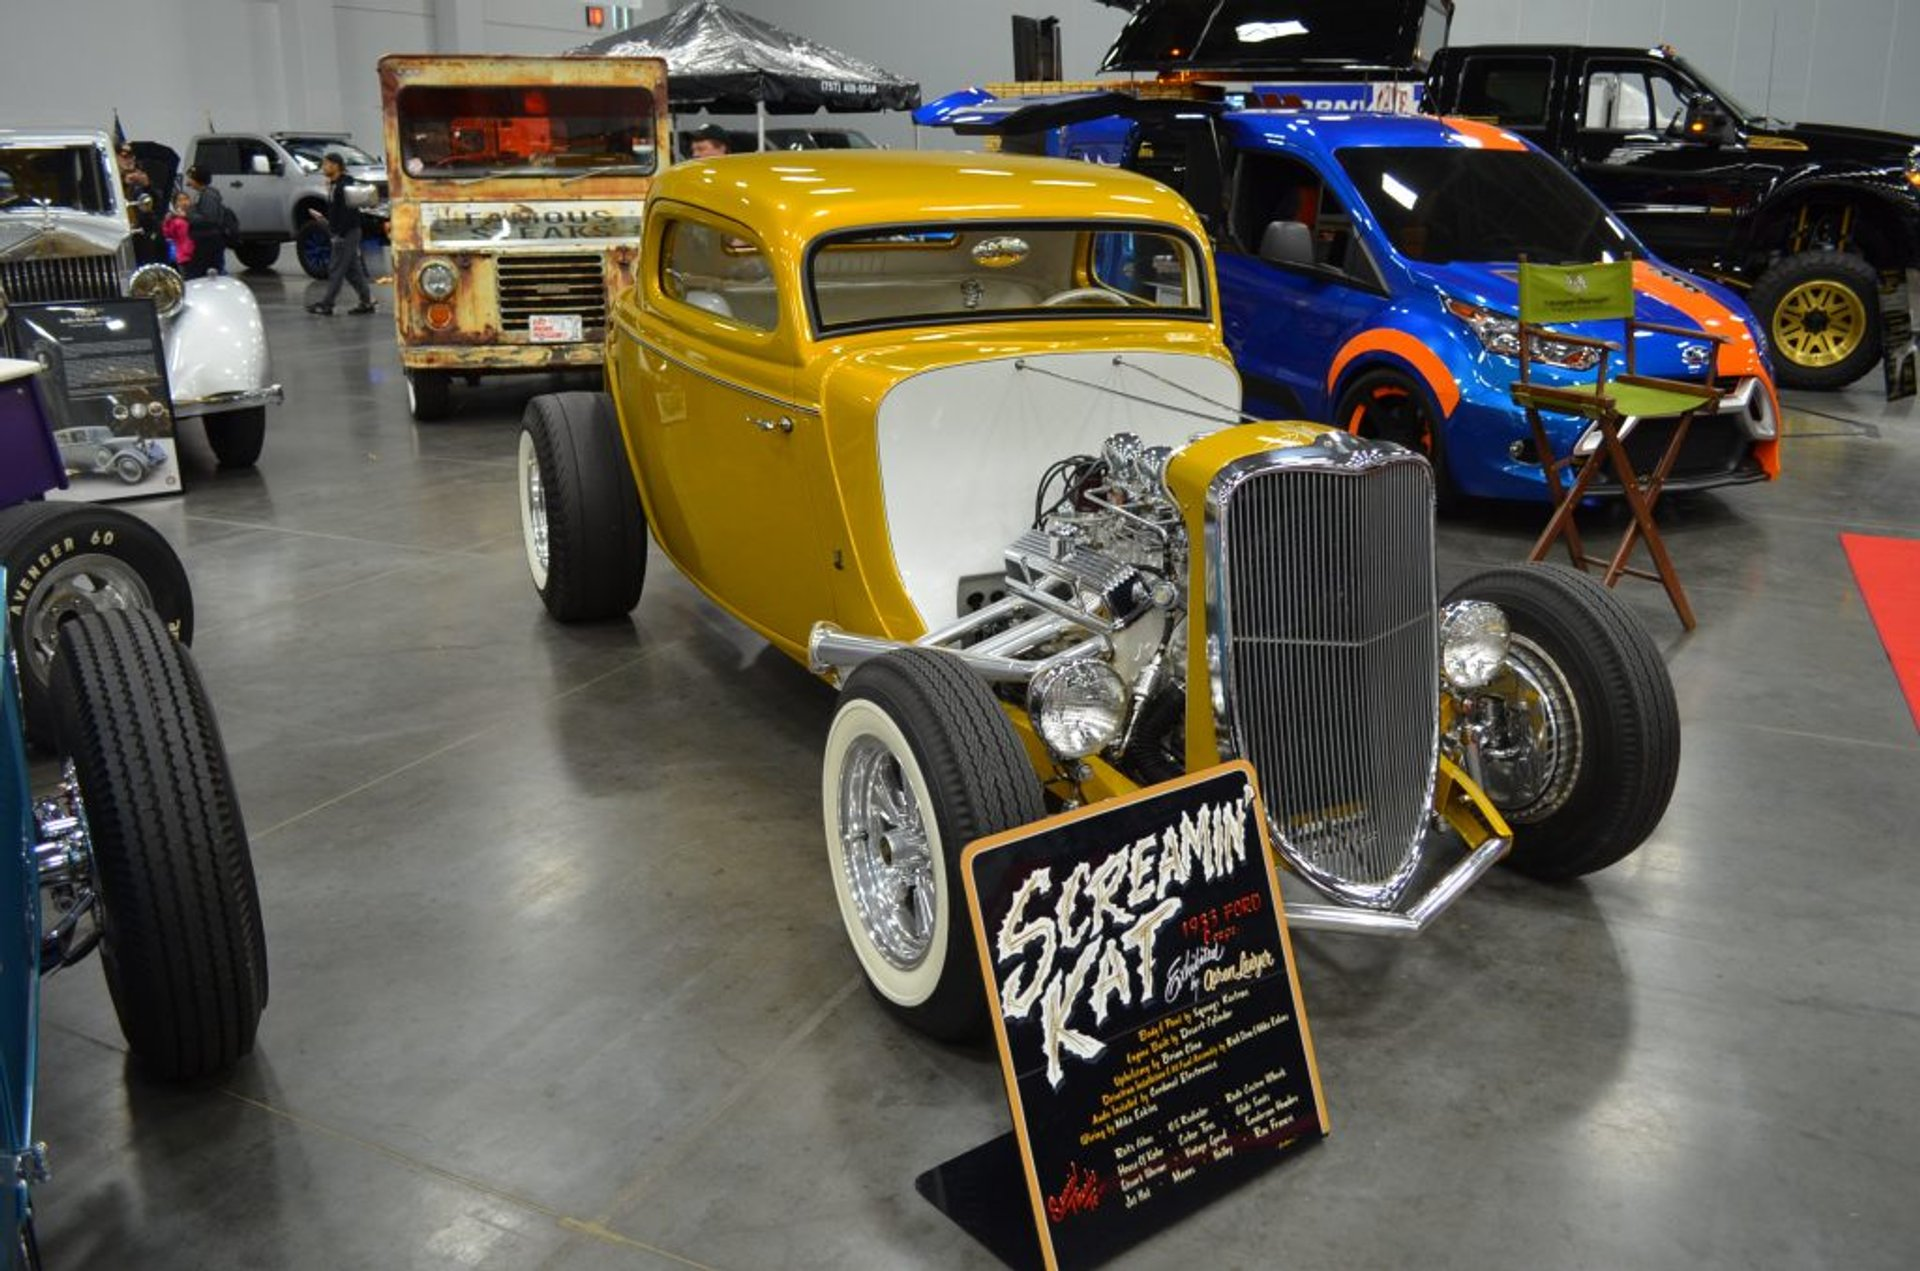 Coastal Virginia Auto Show in Virginia - Best Season 2019